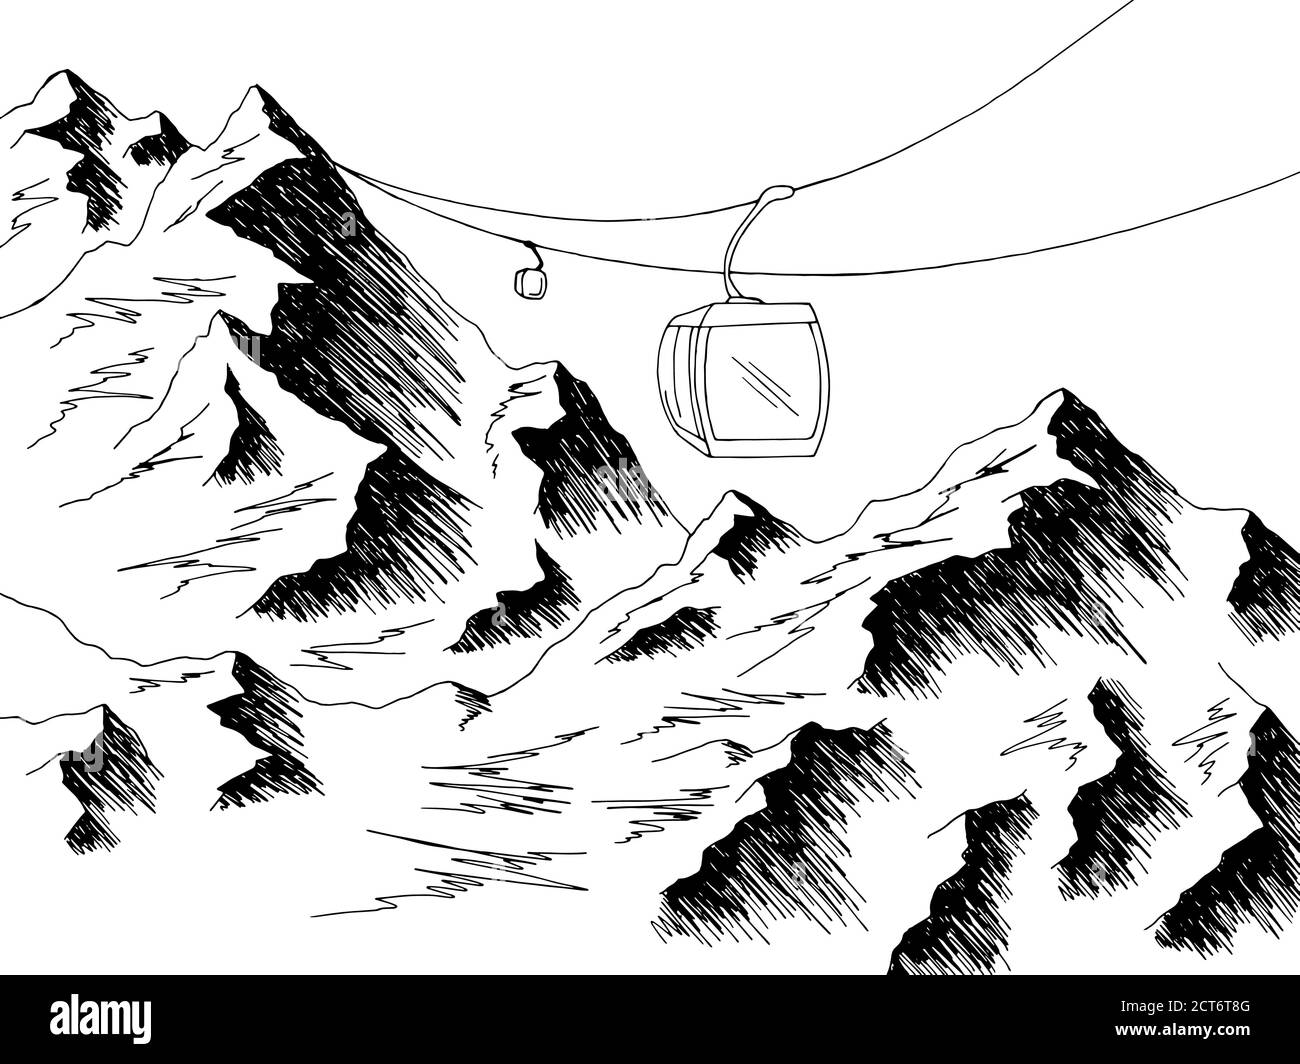 Landscape Mountain Sketch High Resolution Stock Photography And Images Alamy Find & download the most popular mountain drawing vectors on freepik free for commercial use high quality images made for creative projects. https www alamy com cable car graphic mountain black white landscape sketch illustration vector image376320240 html